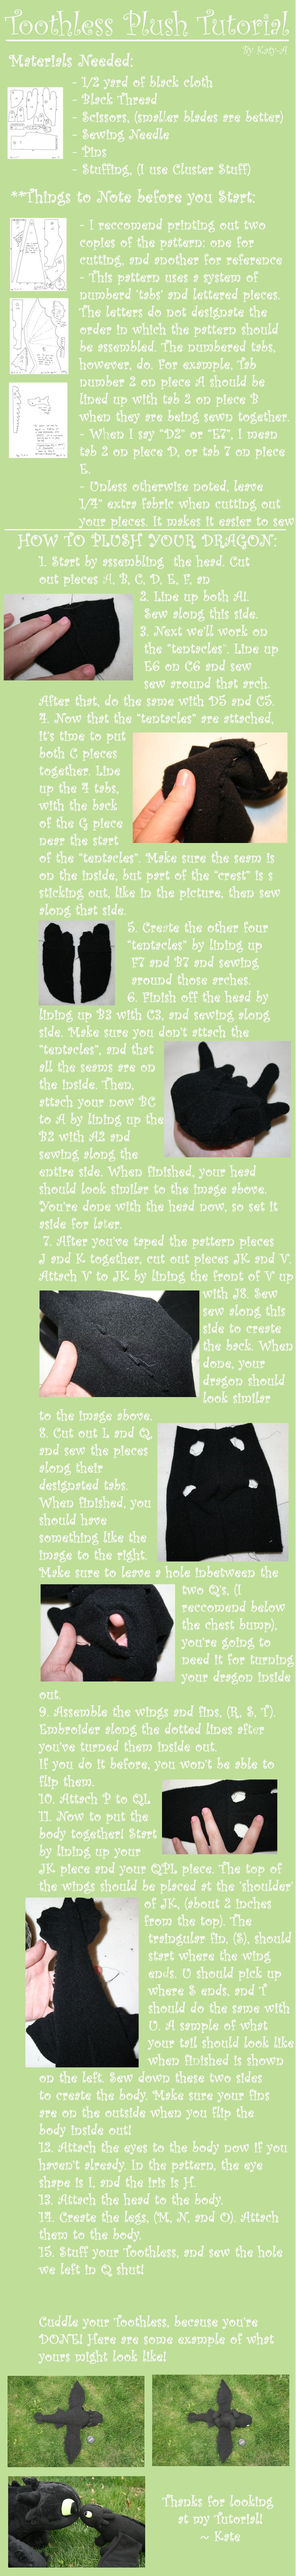 diy toothless (how to train your dragon) plush + tutorial + pattern